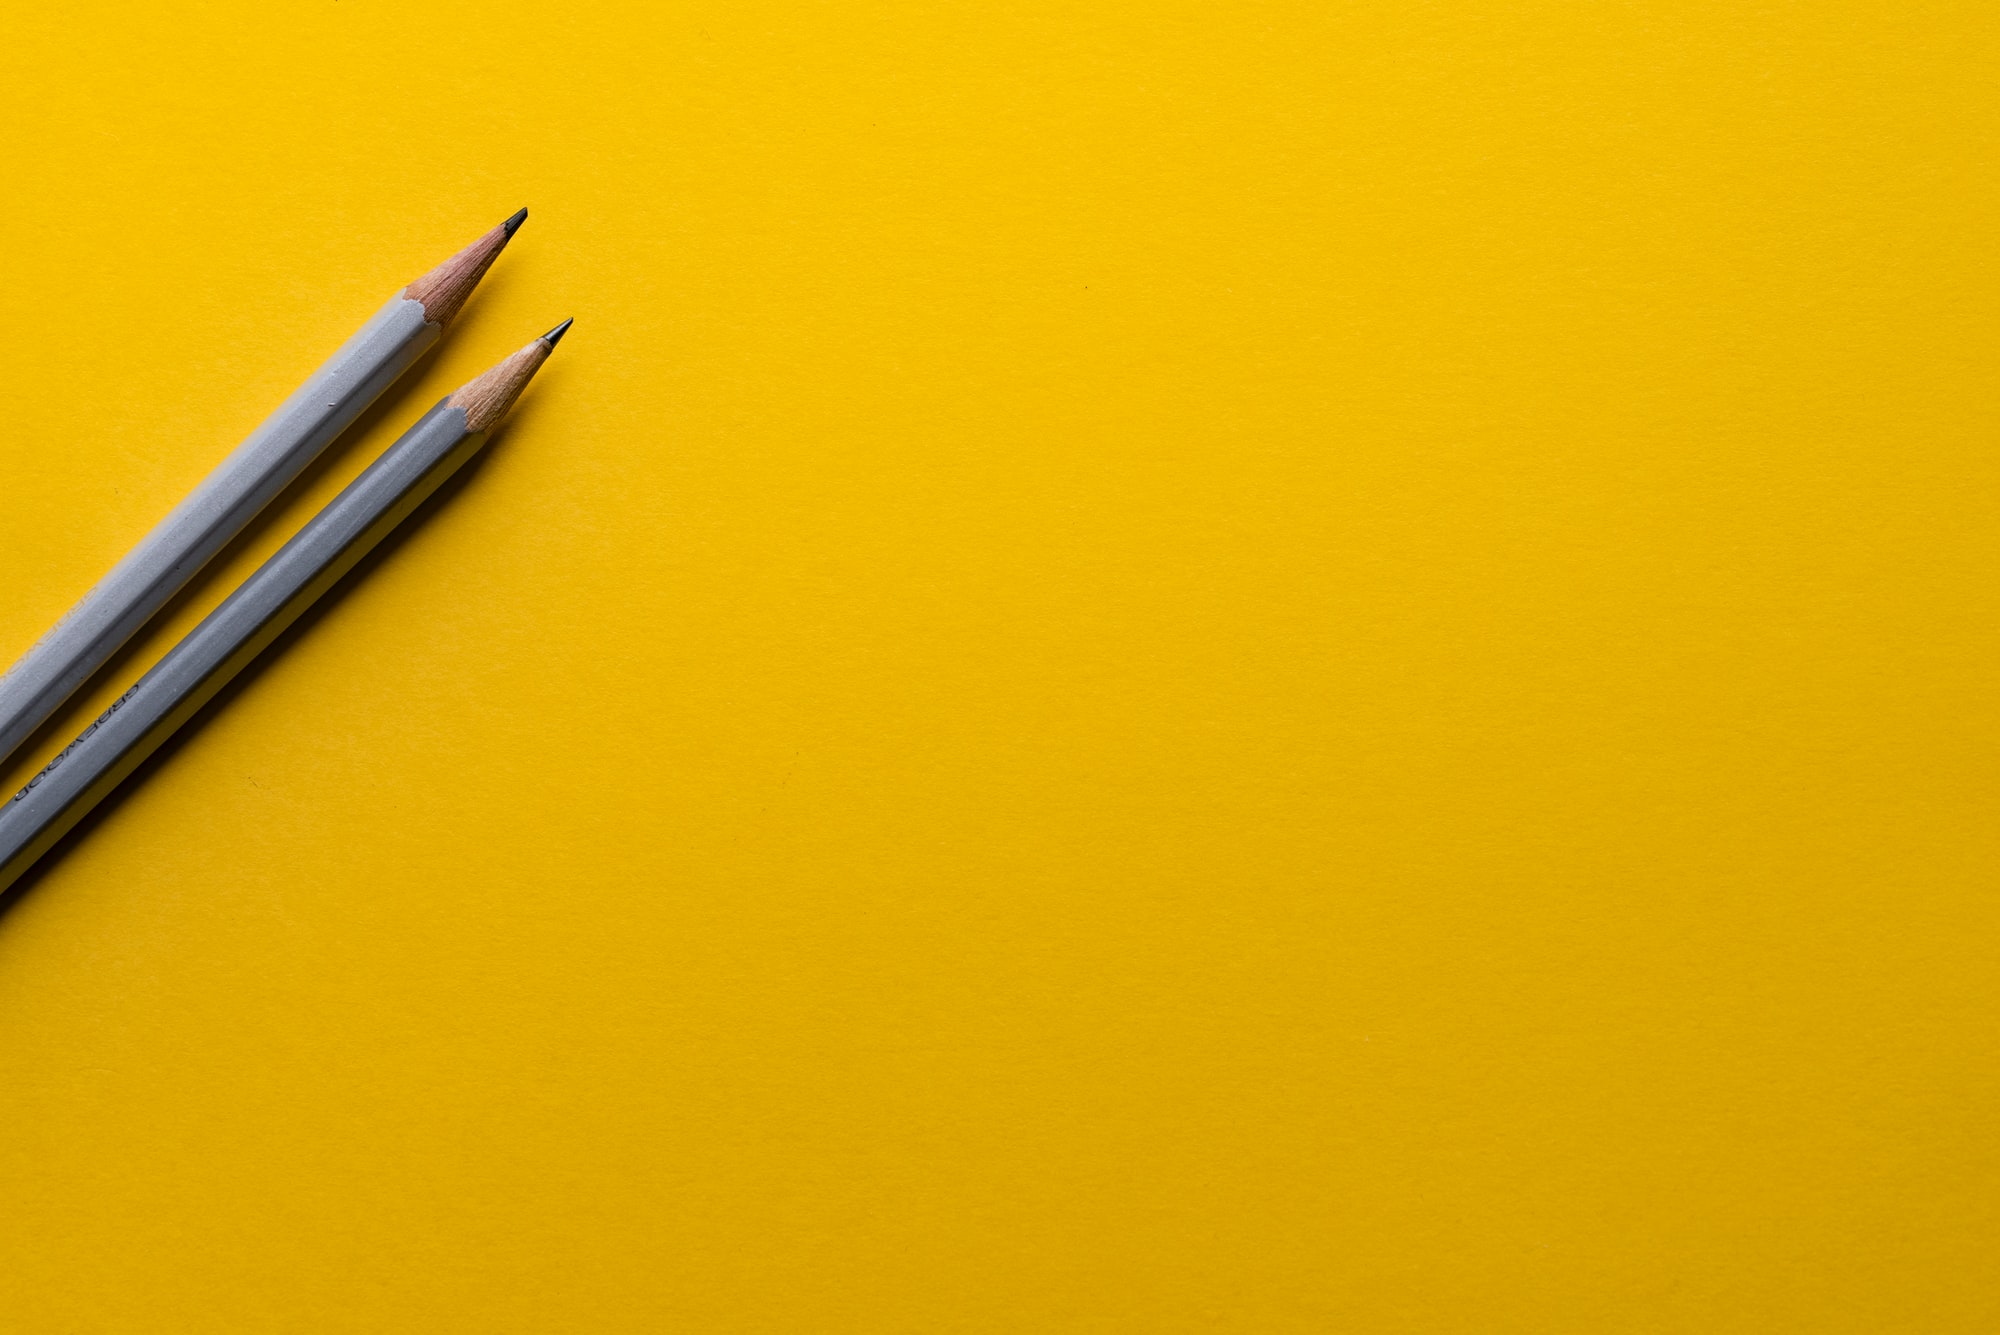 Minimal pencils on yellow